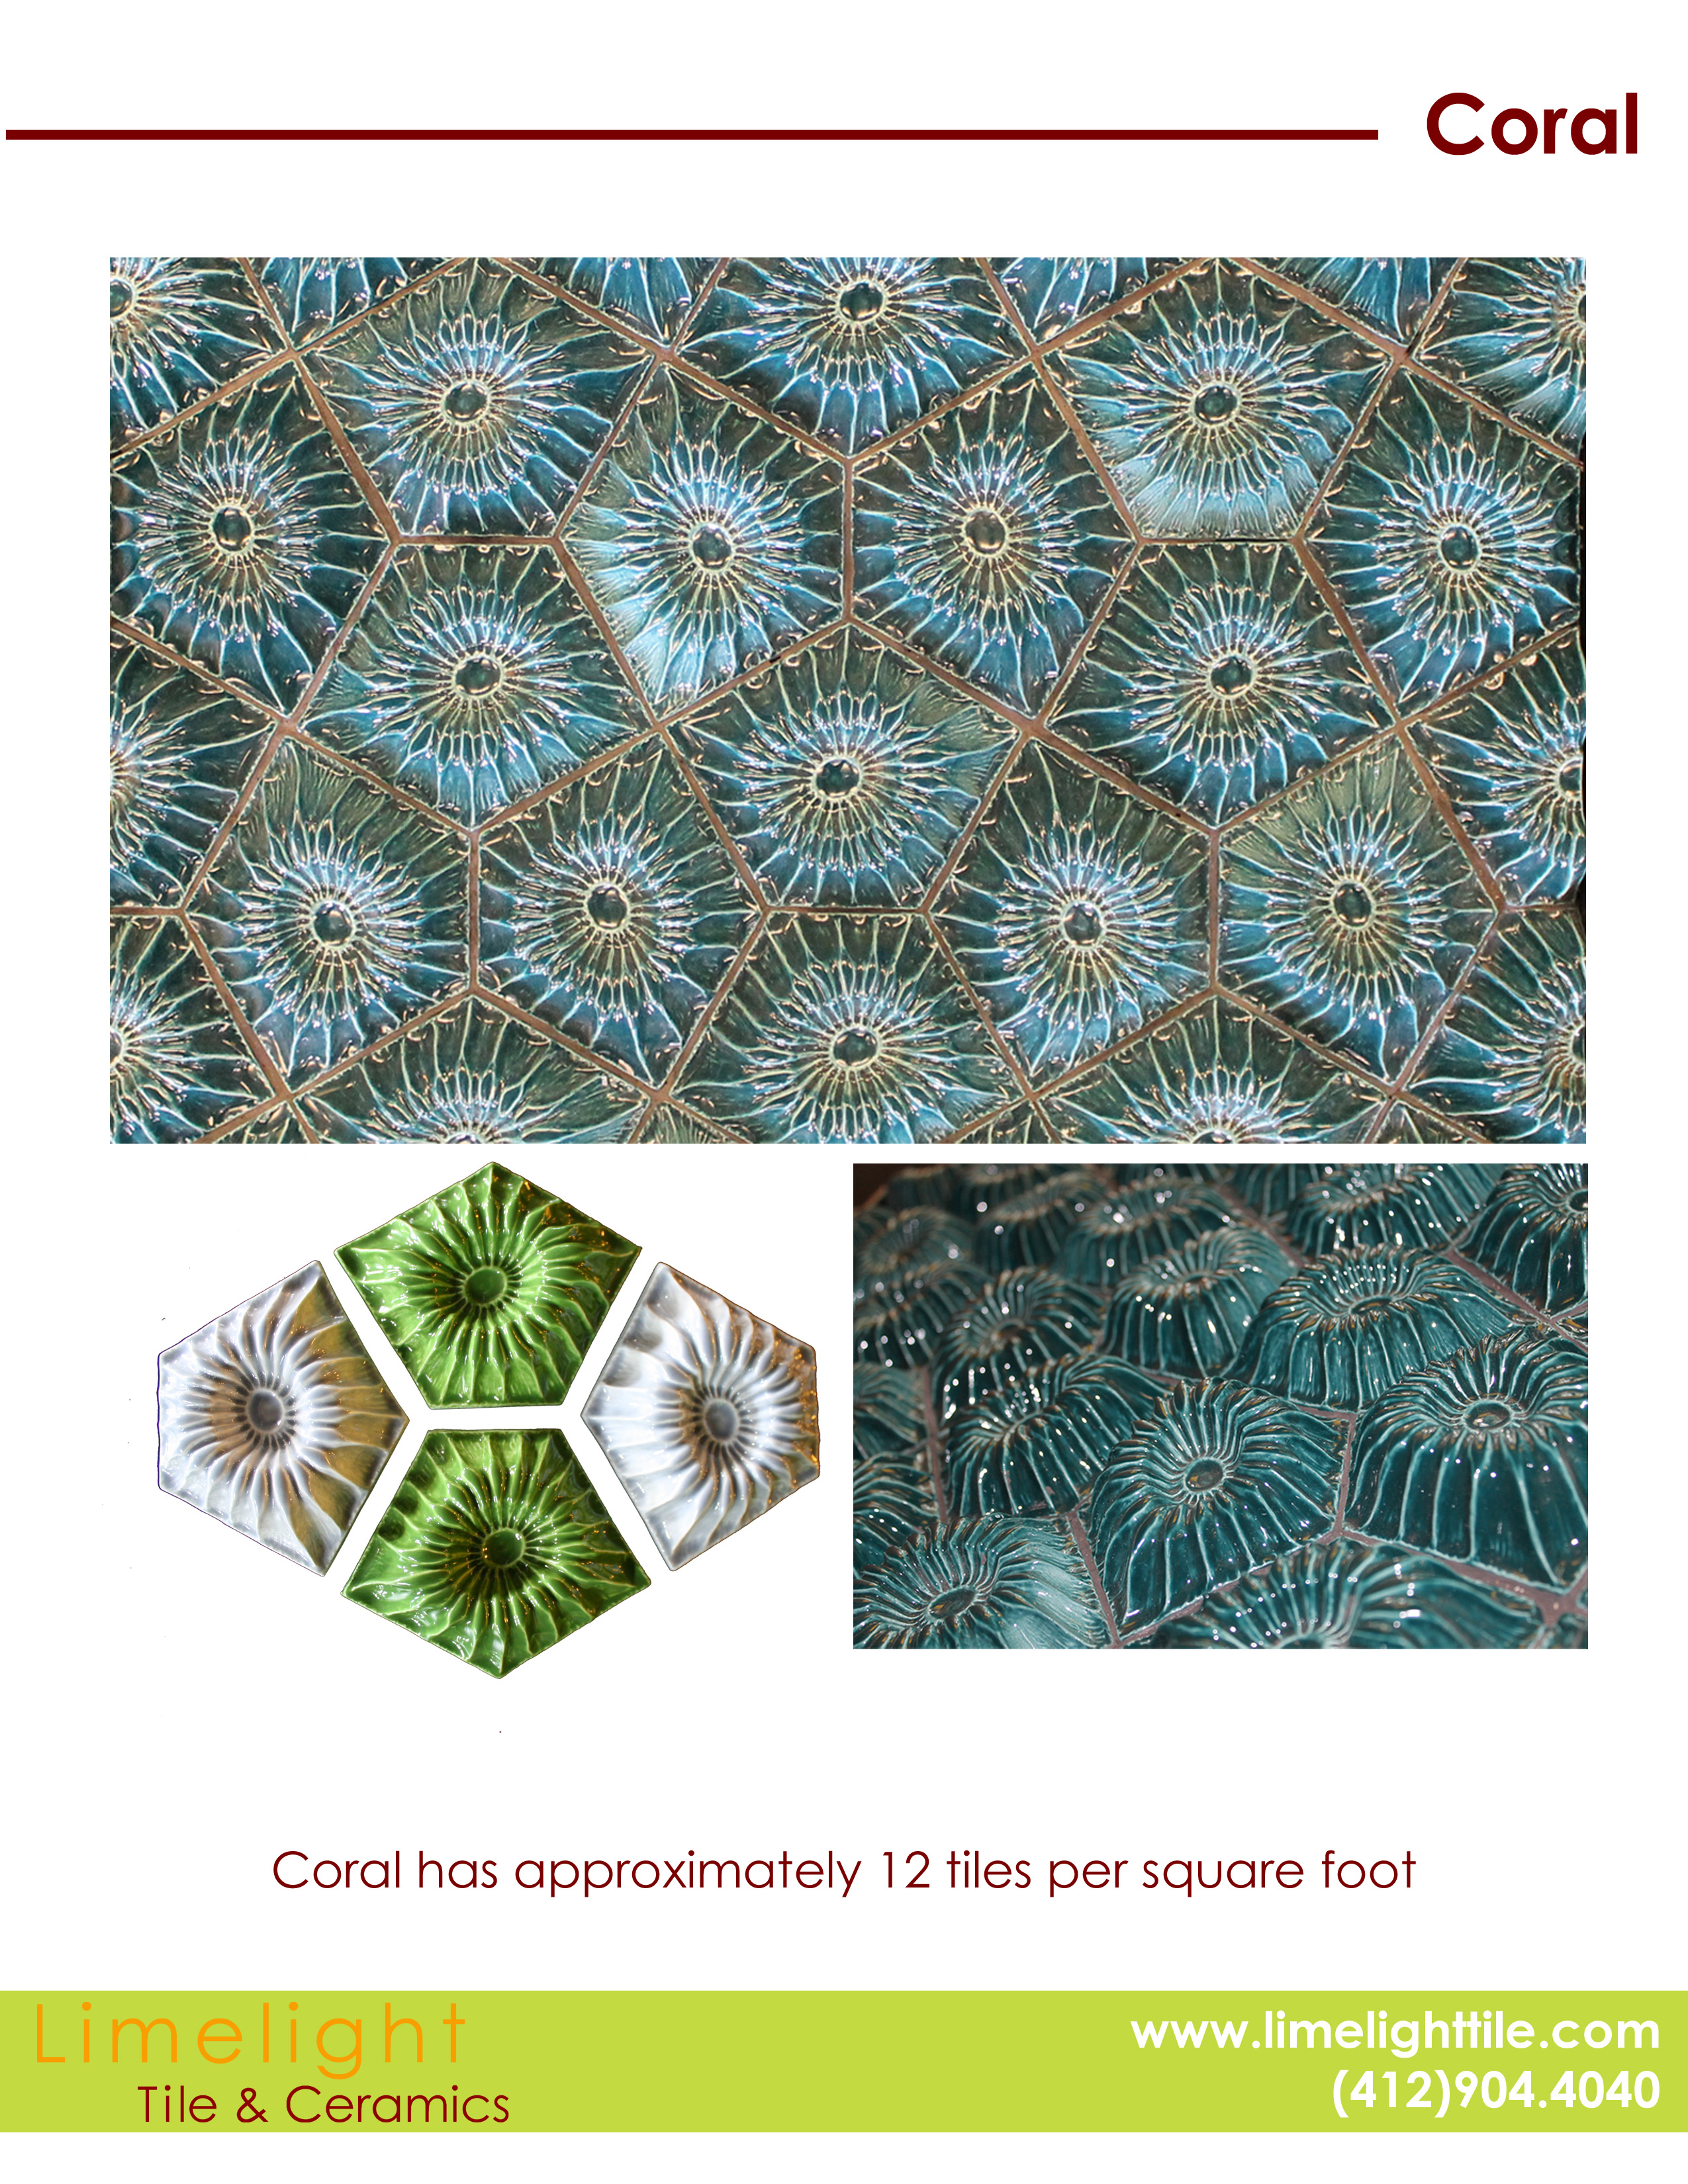 Custom ceramic tiles tile murals backsplashes limelighttile contact our team today and set up a time for a personal consultation to discuss custom ceramic tiles dailygadgetfo Images